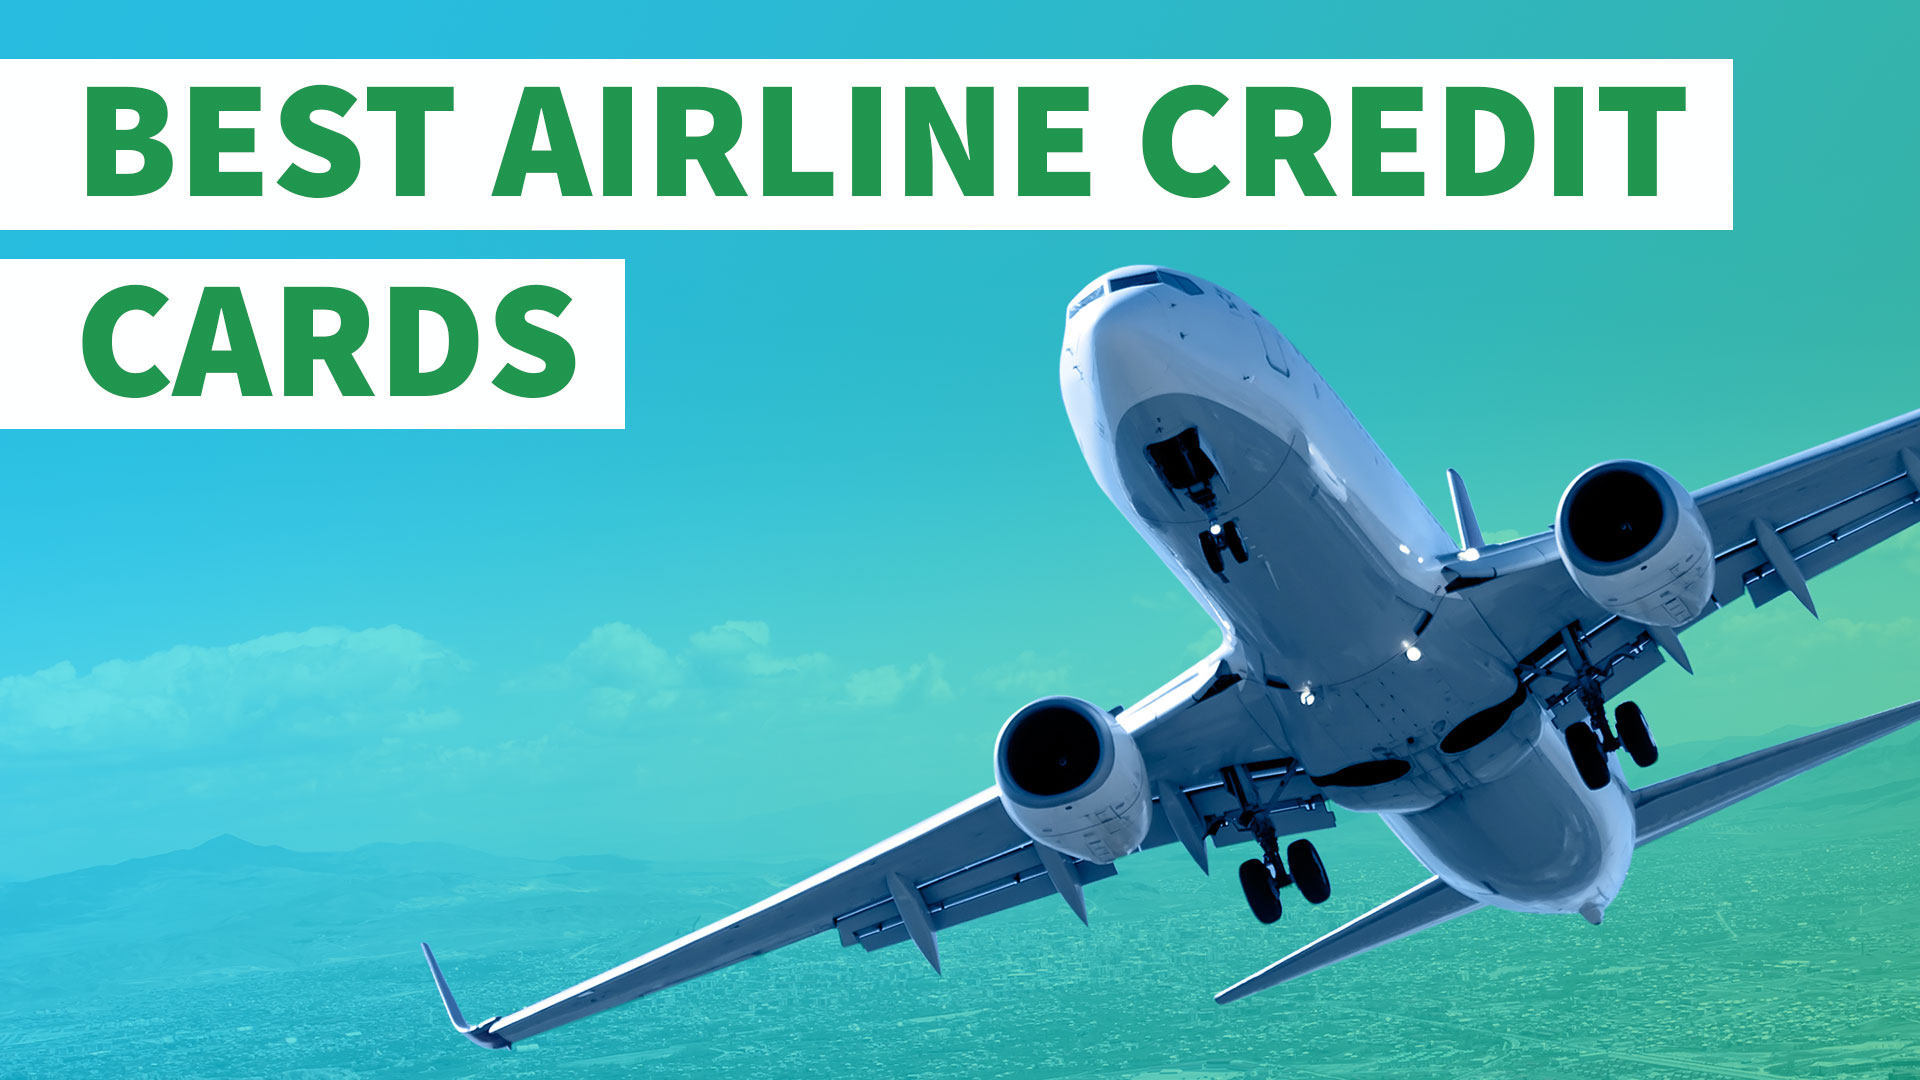 10 Best Airline Credit Cards